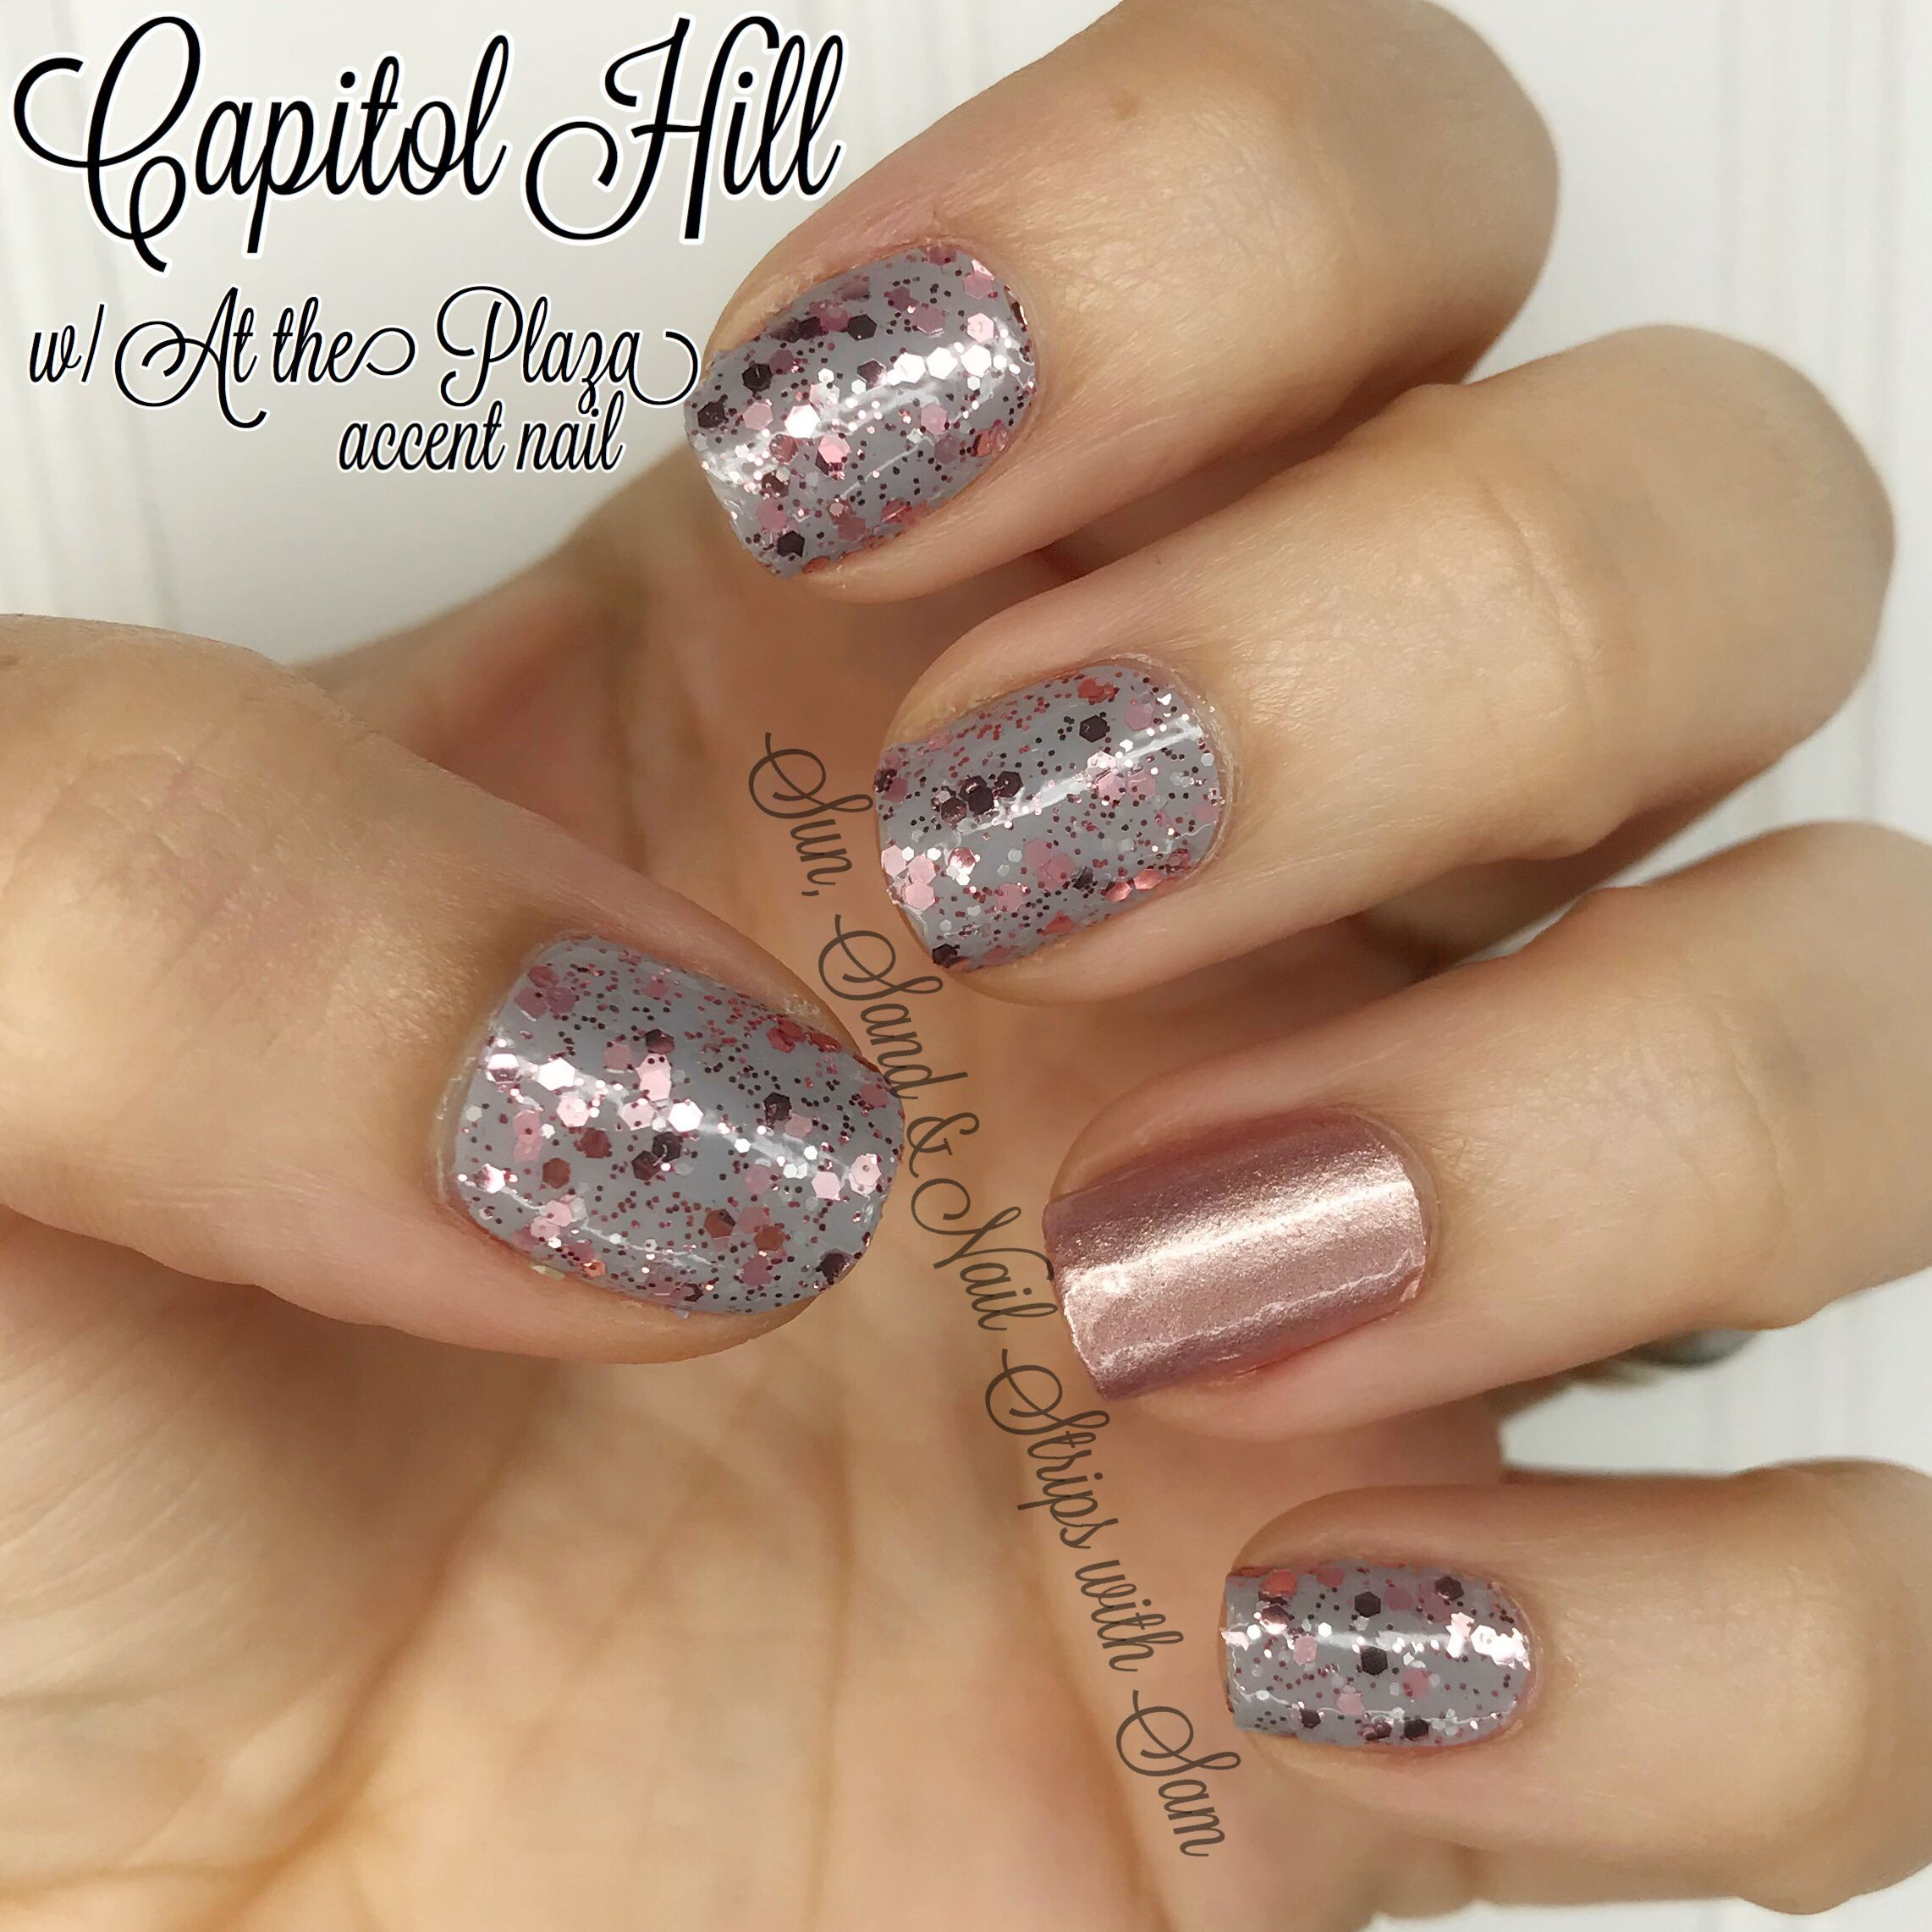 59c4ee29a133 Color Street Capitol Hill with an At the Plaza accent nail! These two are  so cute together. Love gray and rose gold!  colorstreet  colorstreetnails   csnails ...